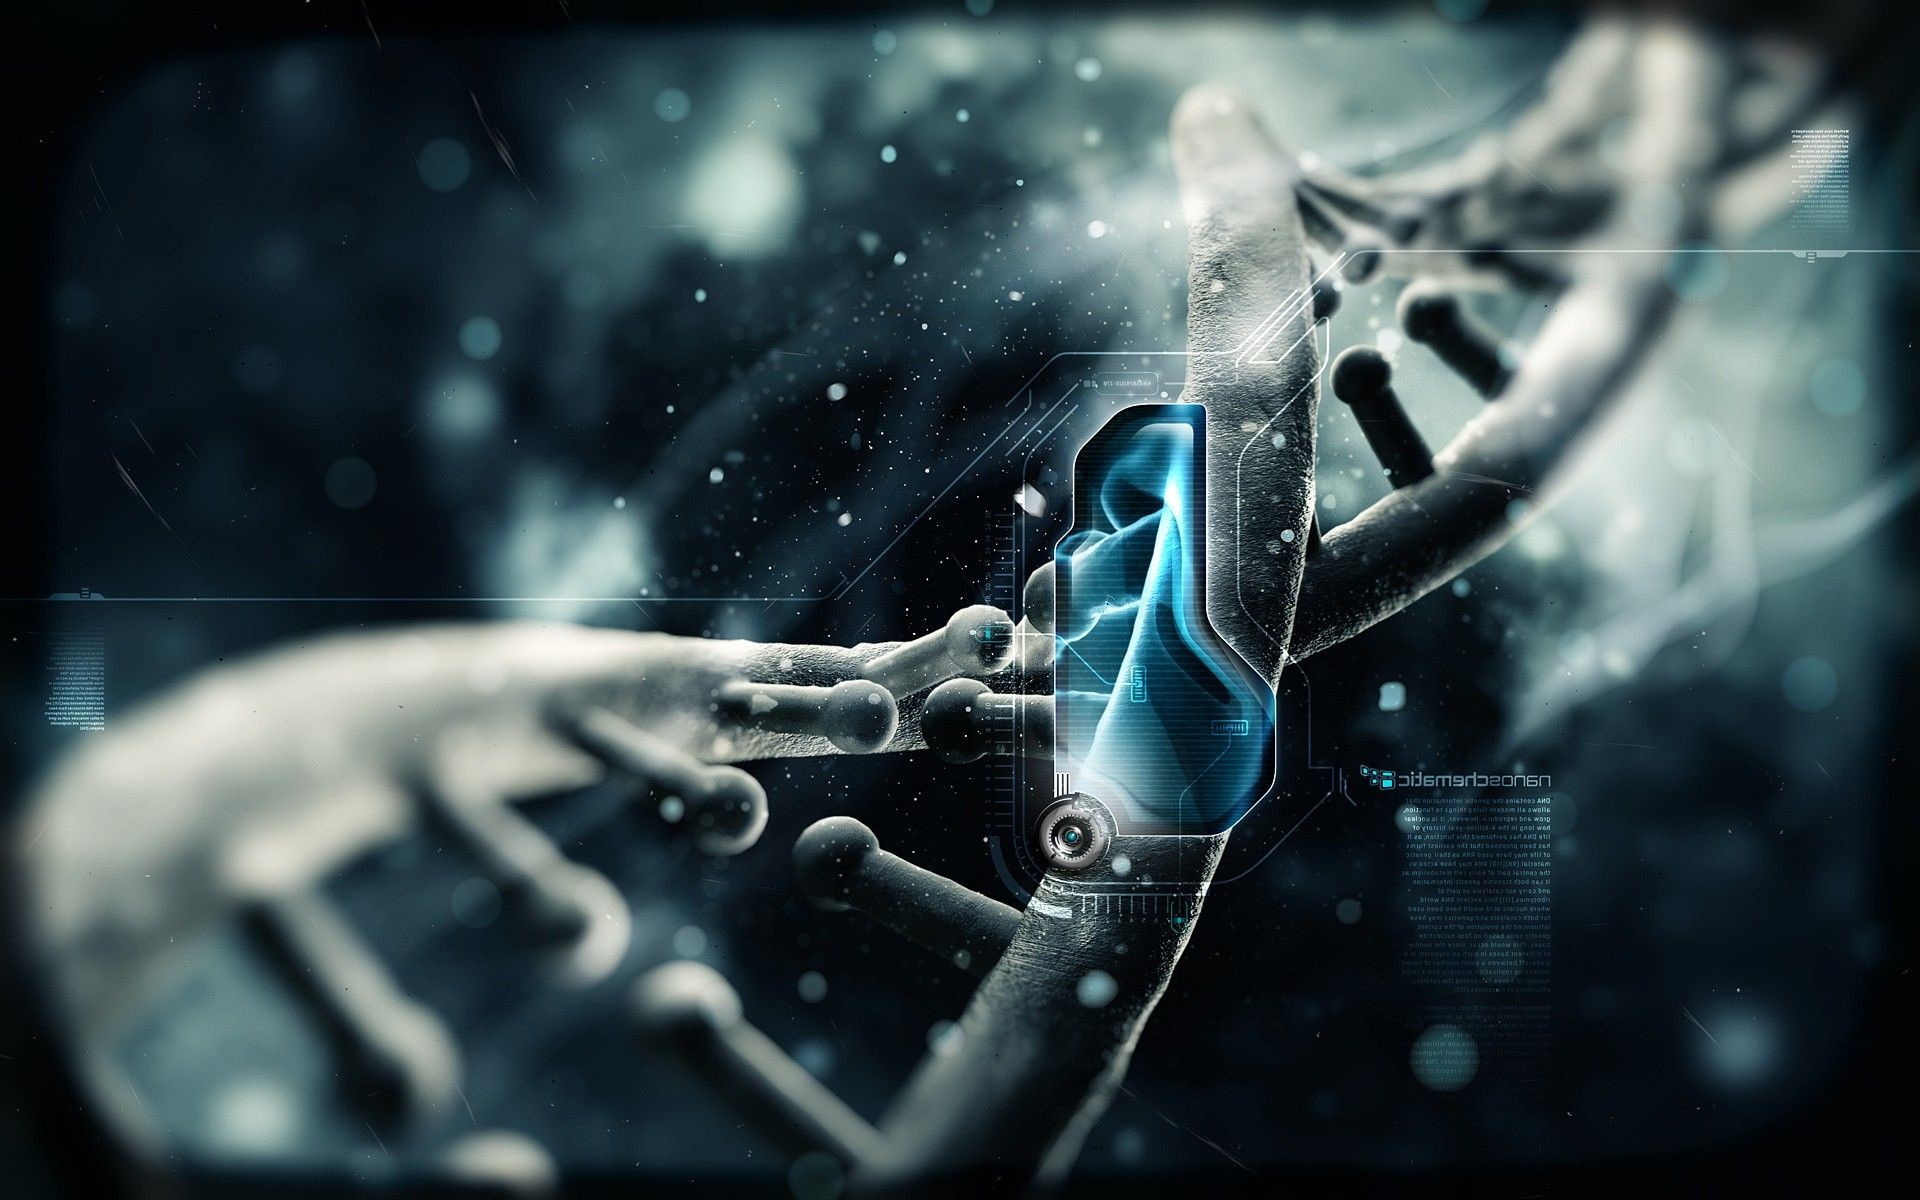 blue, Science Fiction, Anime, DNA, Science, Schematic, …